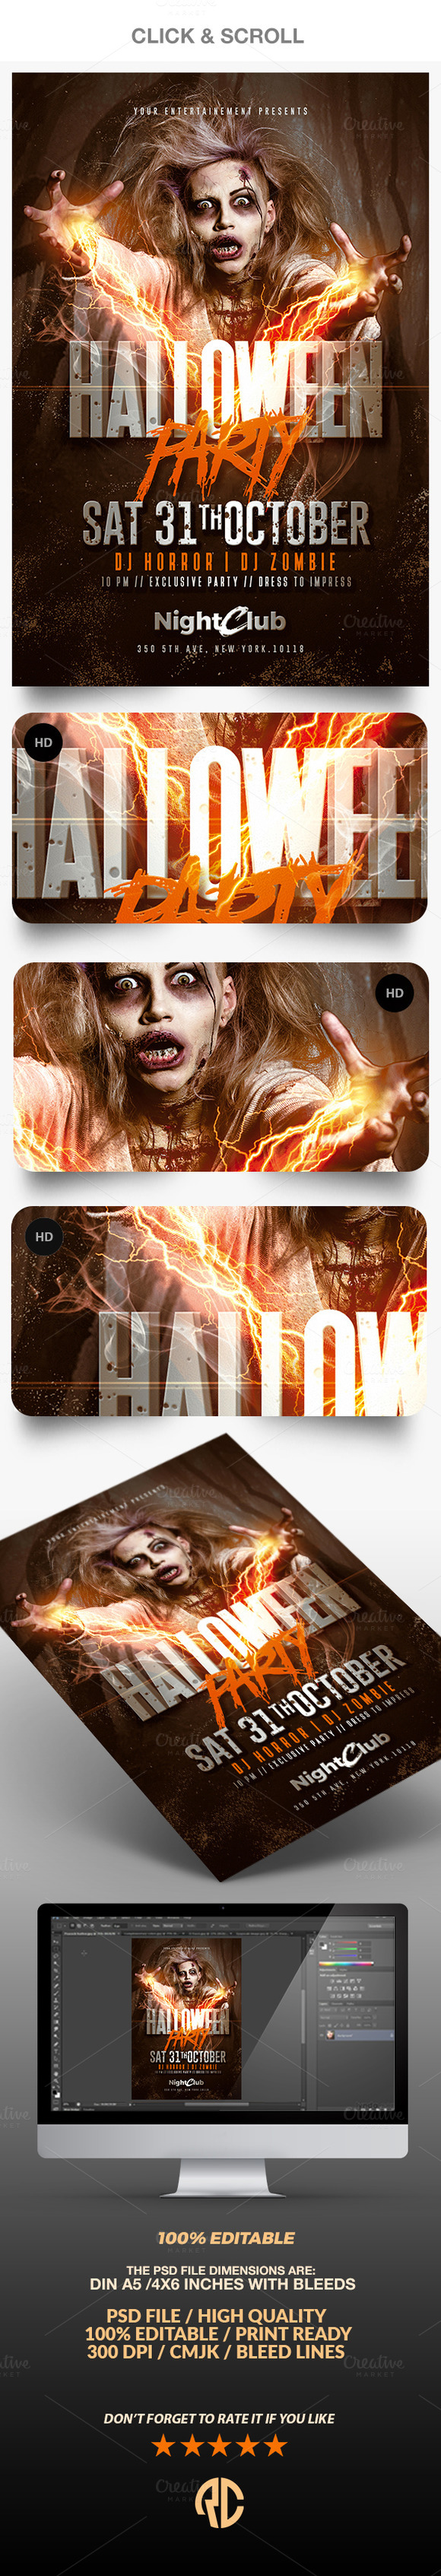 Halloween Party | Zombie Flyer | Halloween party flyer, Party flyer ...